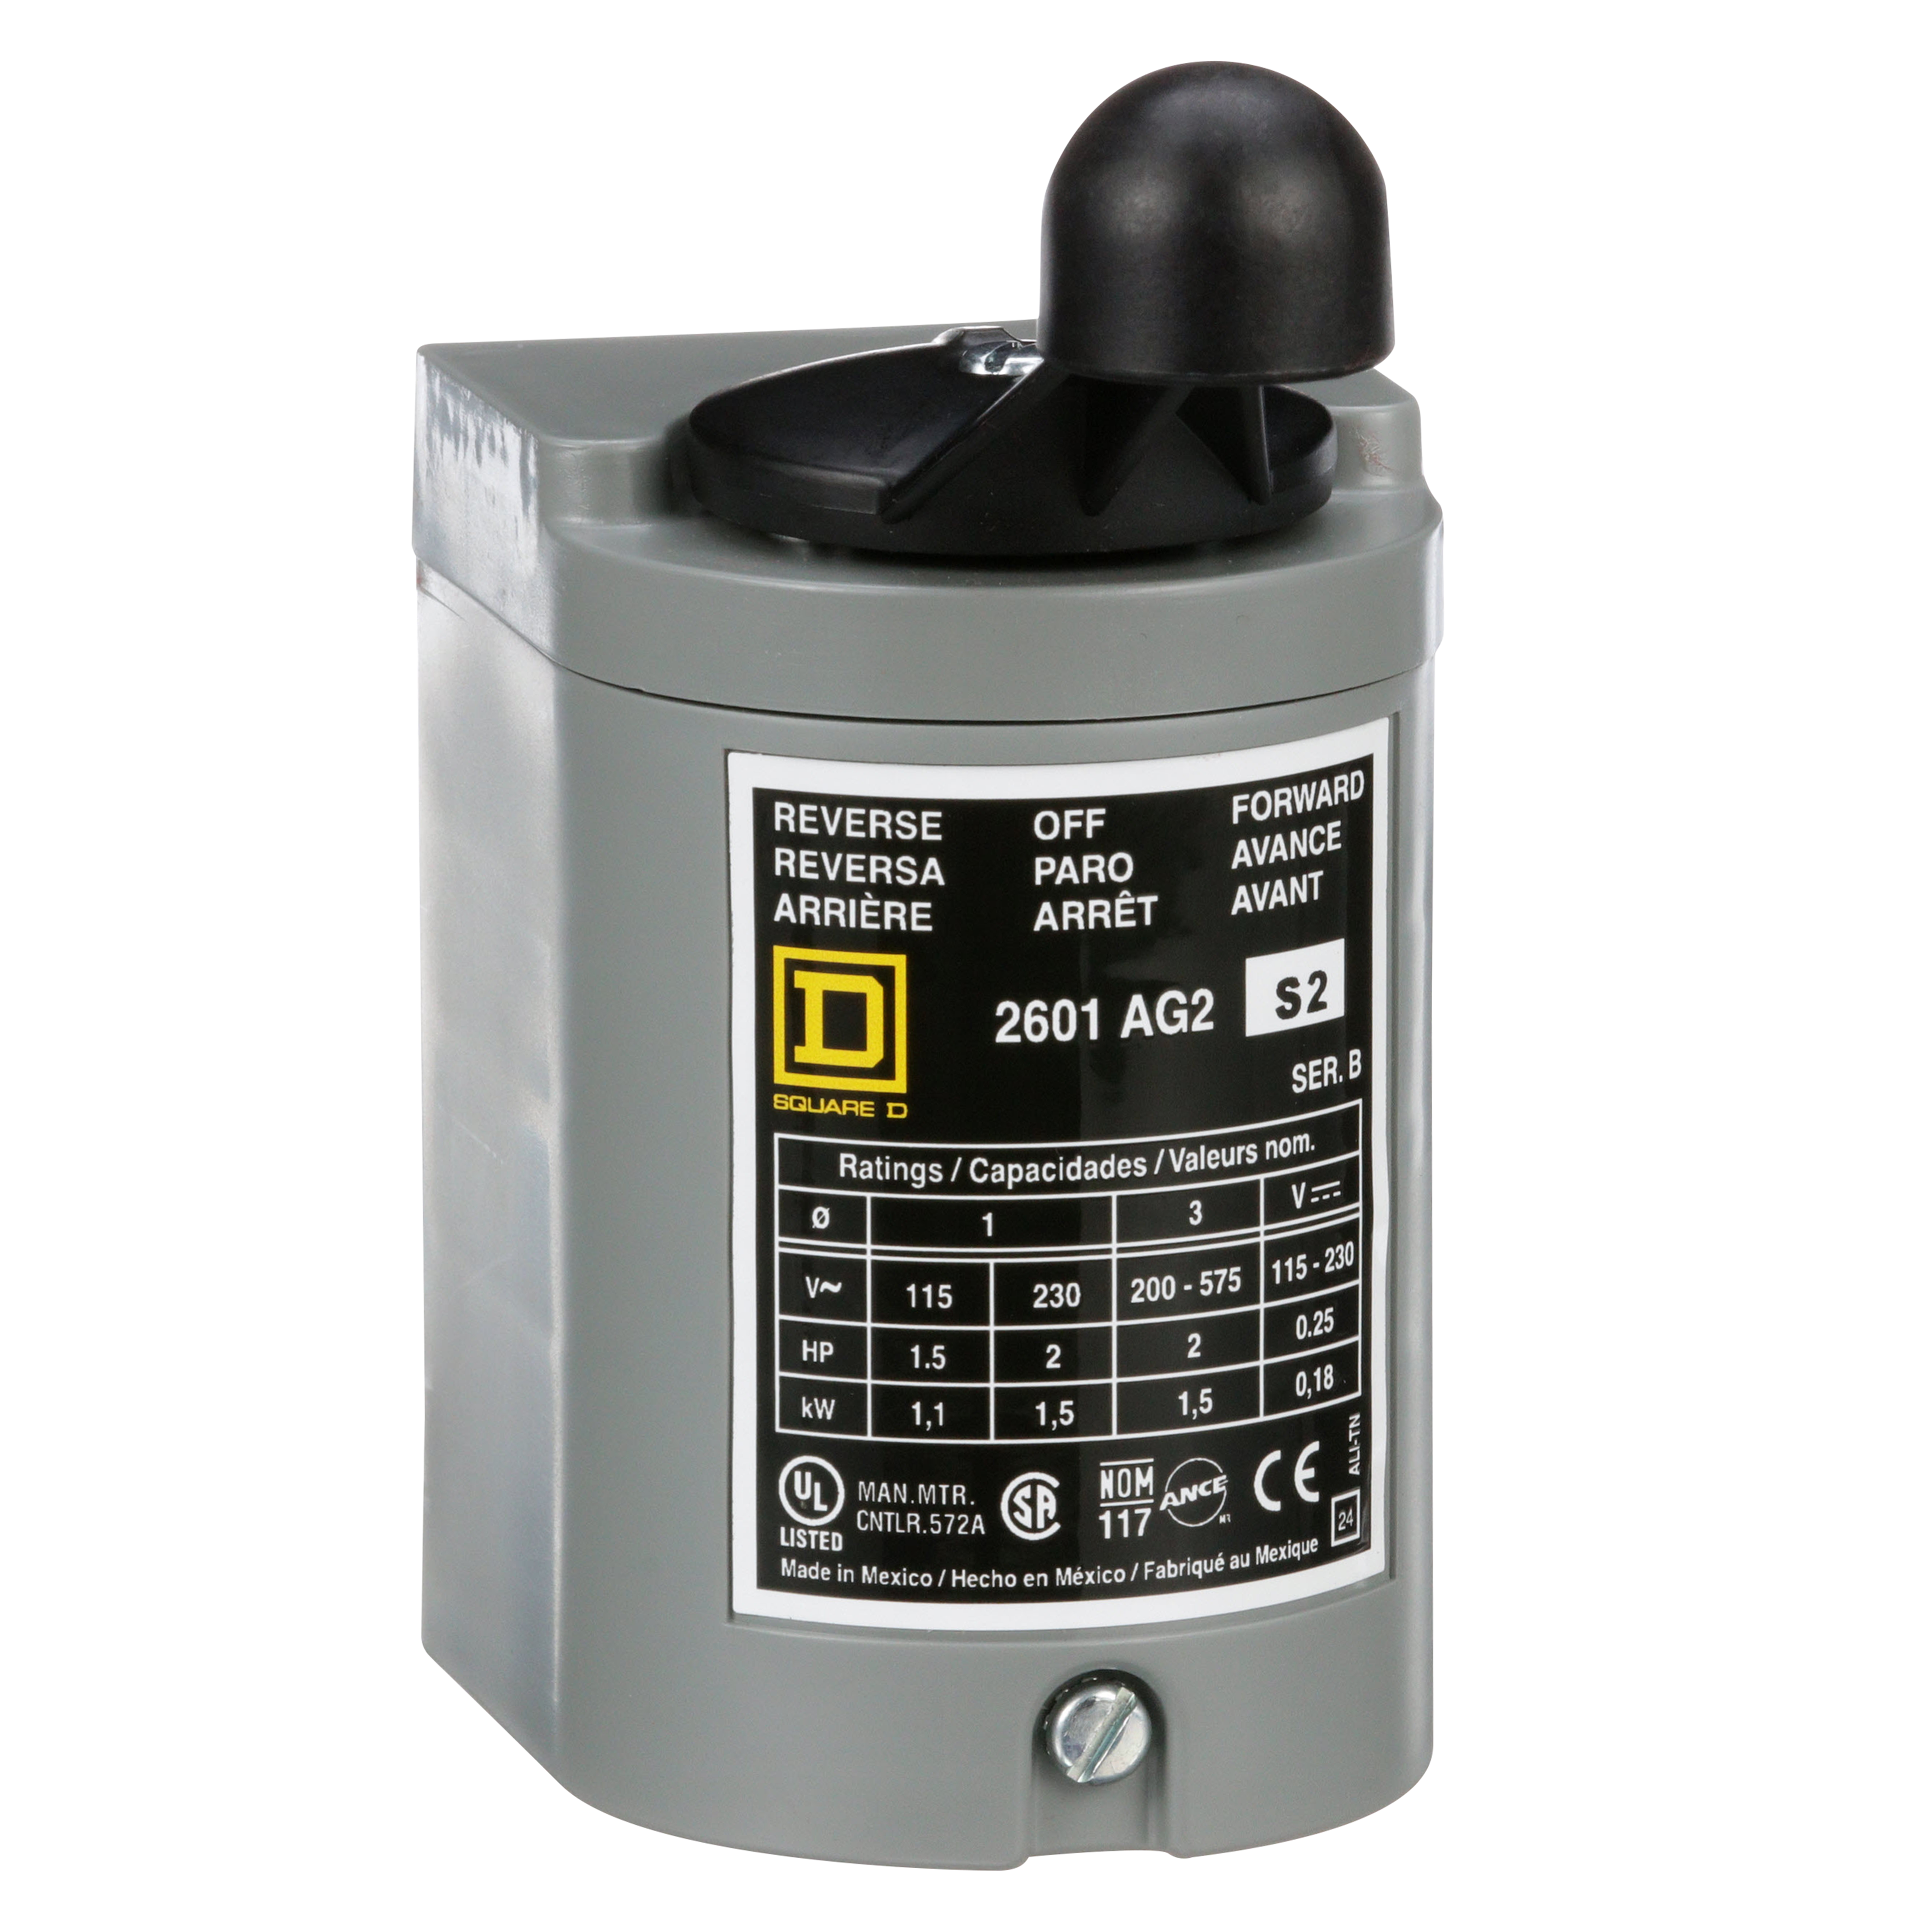 SQUARE D Switch, reversing drum, 2 HP at 230 VAC single phase, 2 HP at 575 VAC polyphase, handle operated, NEMA 1 enclosure